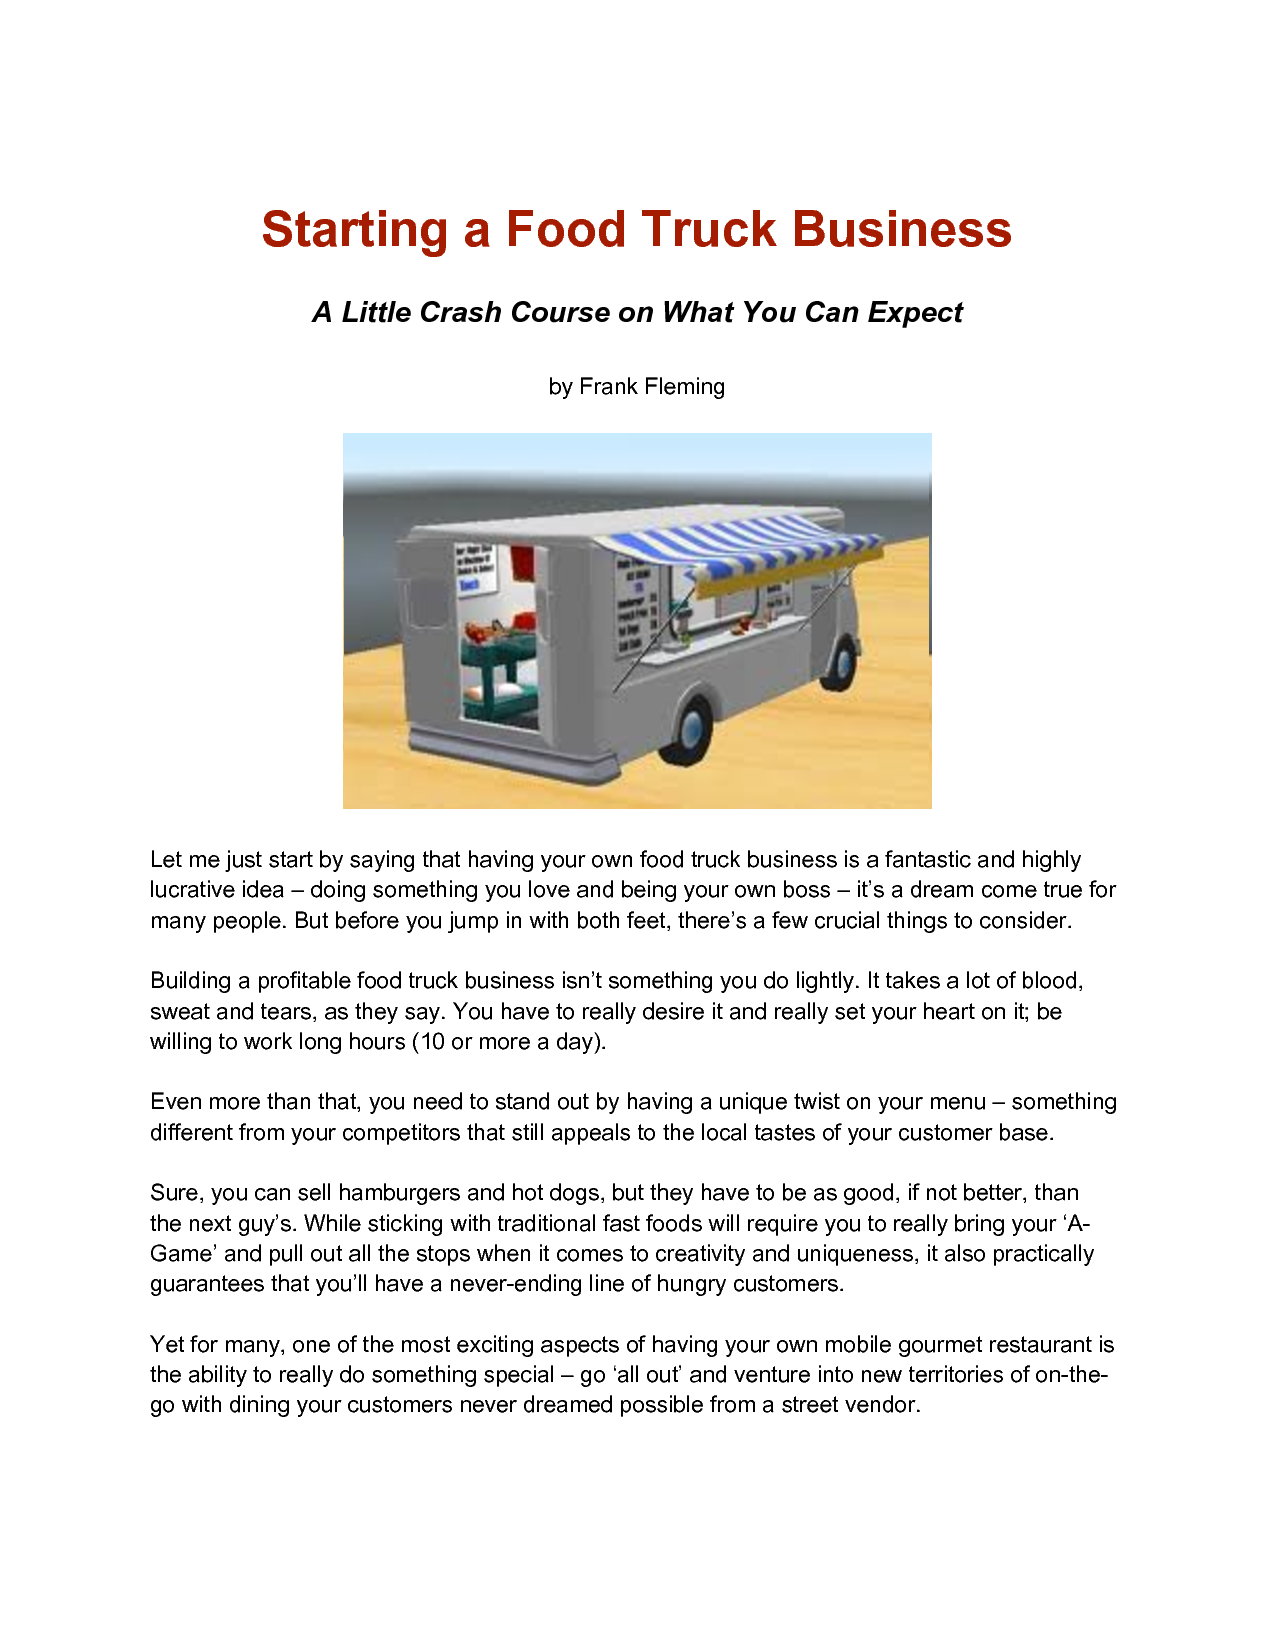 Food truck business plan template httprplg8ebfc880 food truck business plan template httprplg8ebfc880 startbusiness wajeb Gallery